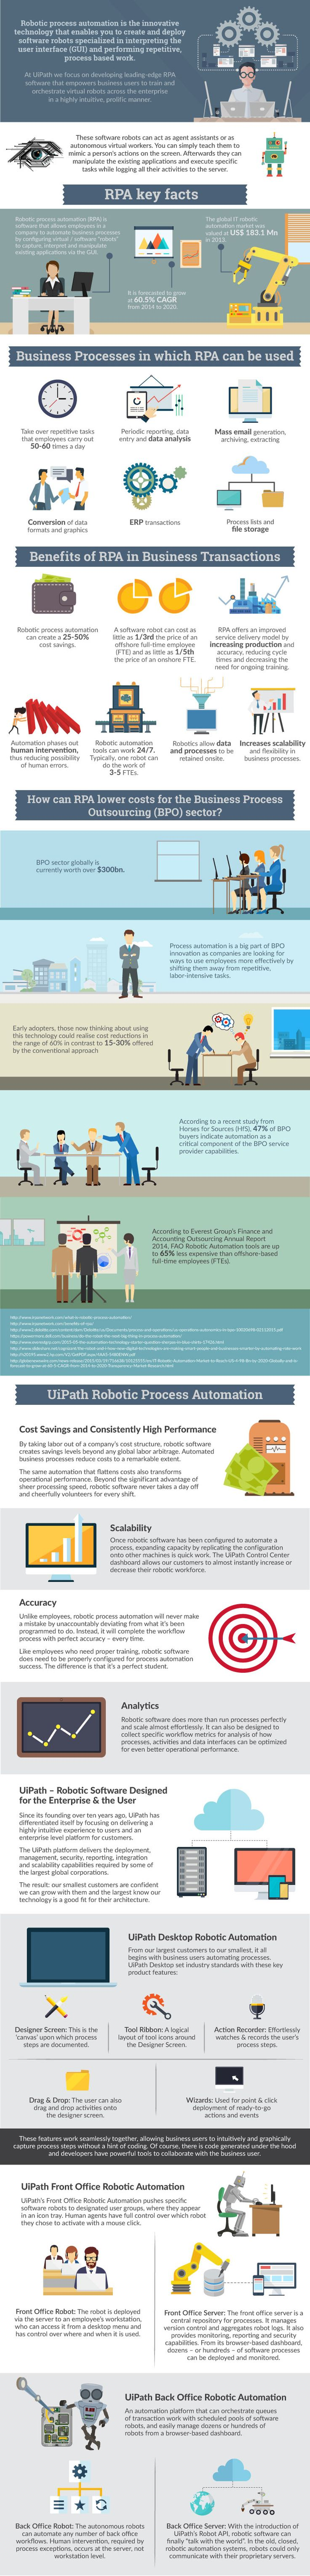 The Robotic Process Automation Infographic explores RPA Key Facts, business processes in which RPA can be used, benefits of RPA in business transactions and how it can lower costs for the BPO industry. It also showcases some of the most common scenarios for software automation: the desktop robotic automation, the front office robotic automation and the back office robotic automation. #infographics